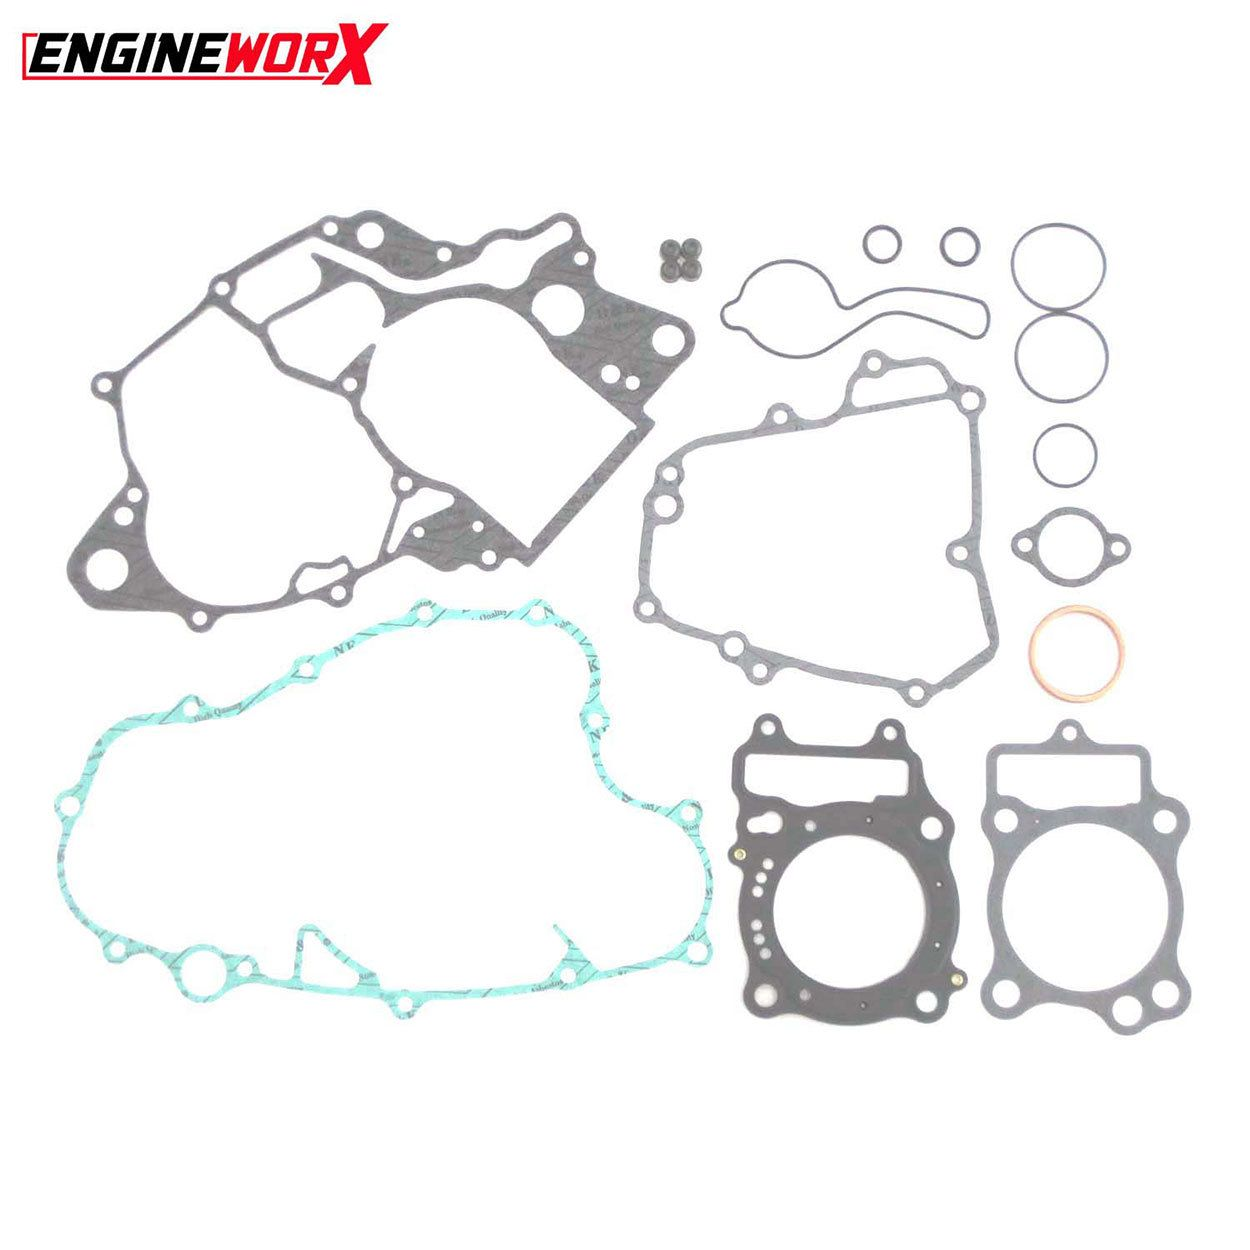 Engineworx Gasket Kit Full Set Yamaha YZ250F 01-13 WR250F